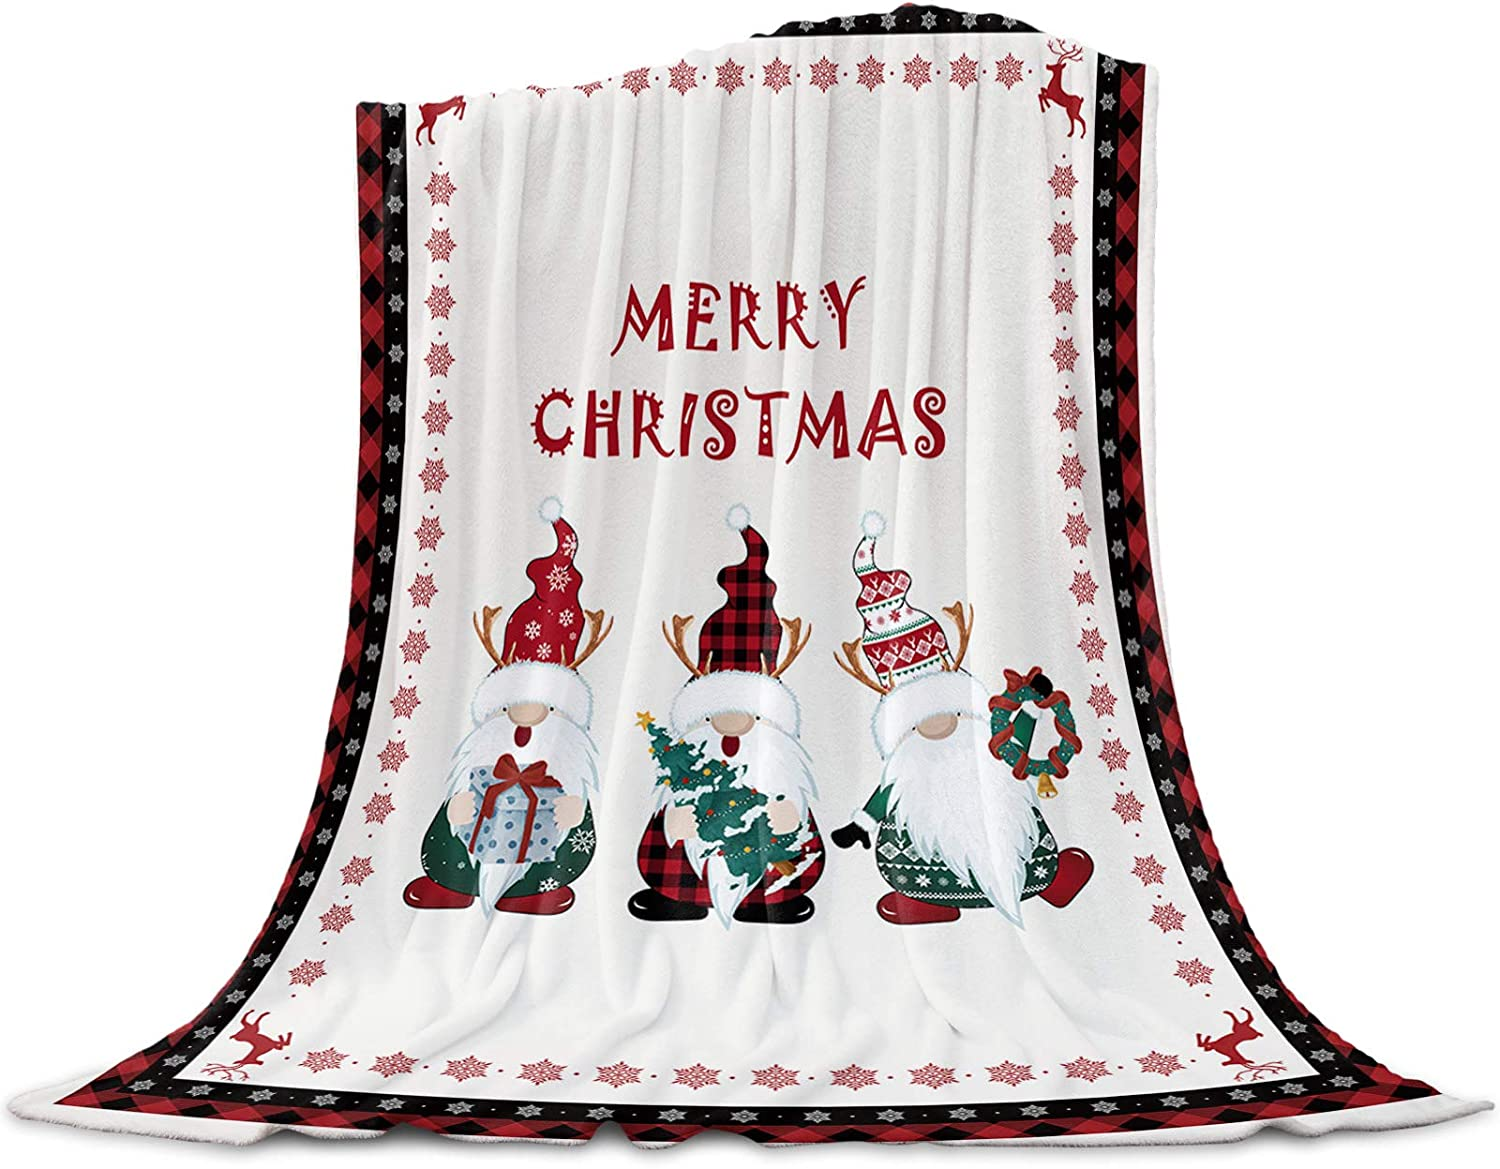 LEO BON Soft Warmer Throw Blankets Season All for Christma Merry OFFicial store Courier shipping free